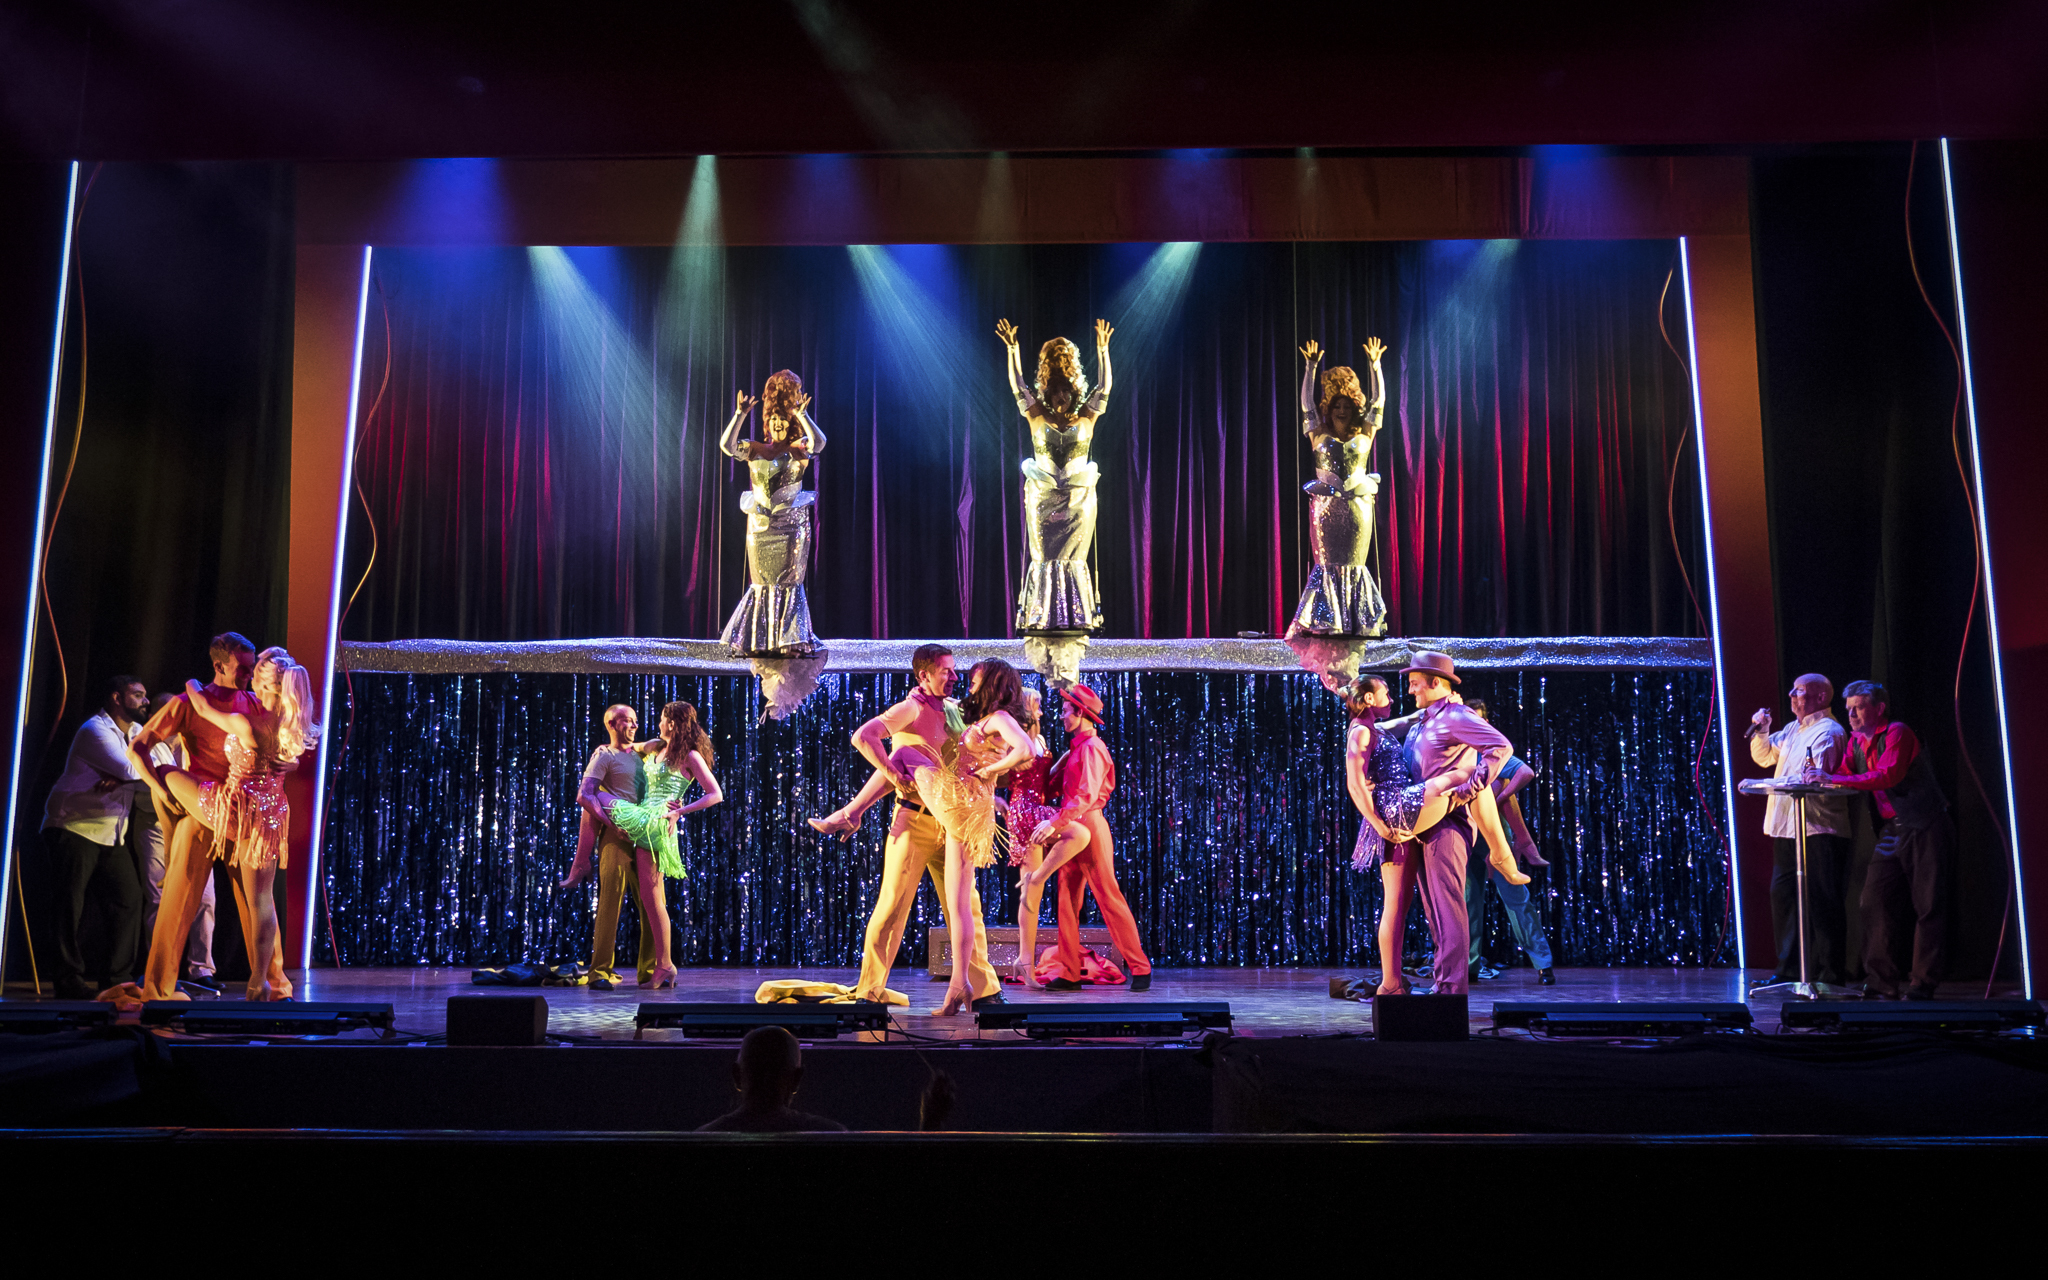 Bournemouth musical theatre society cancel Saturday Night Fever shows